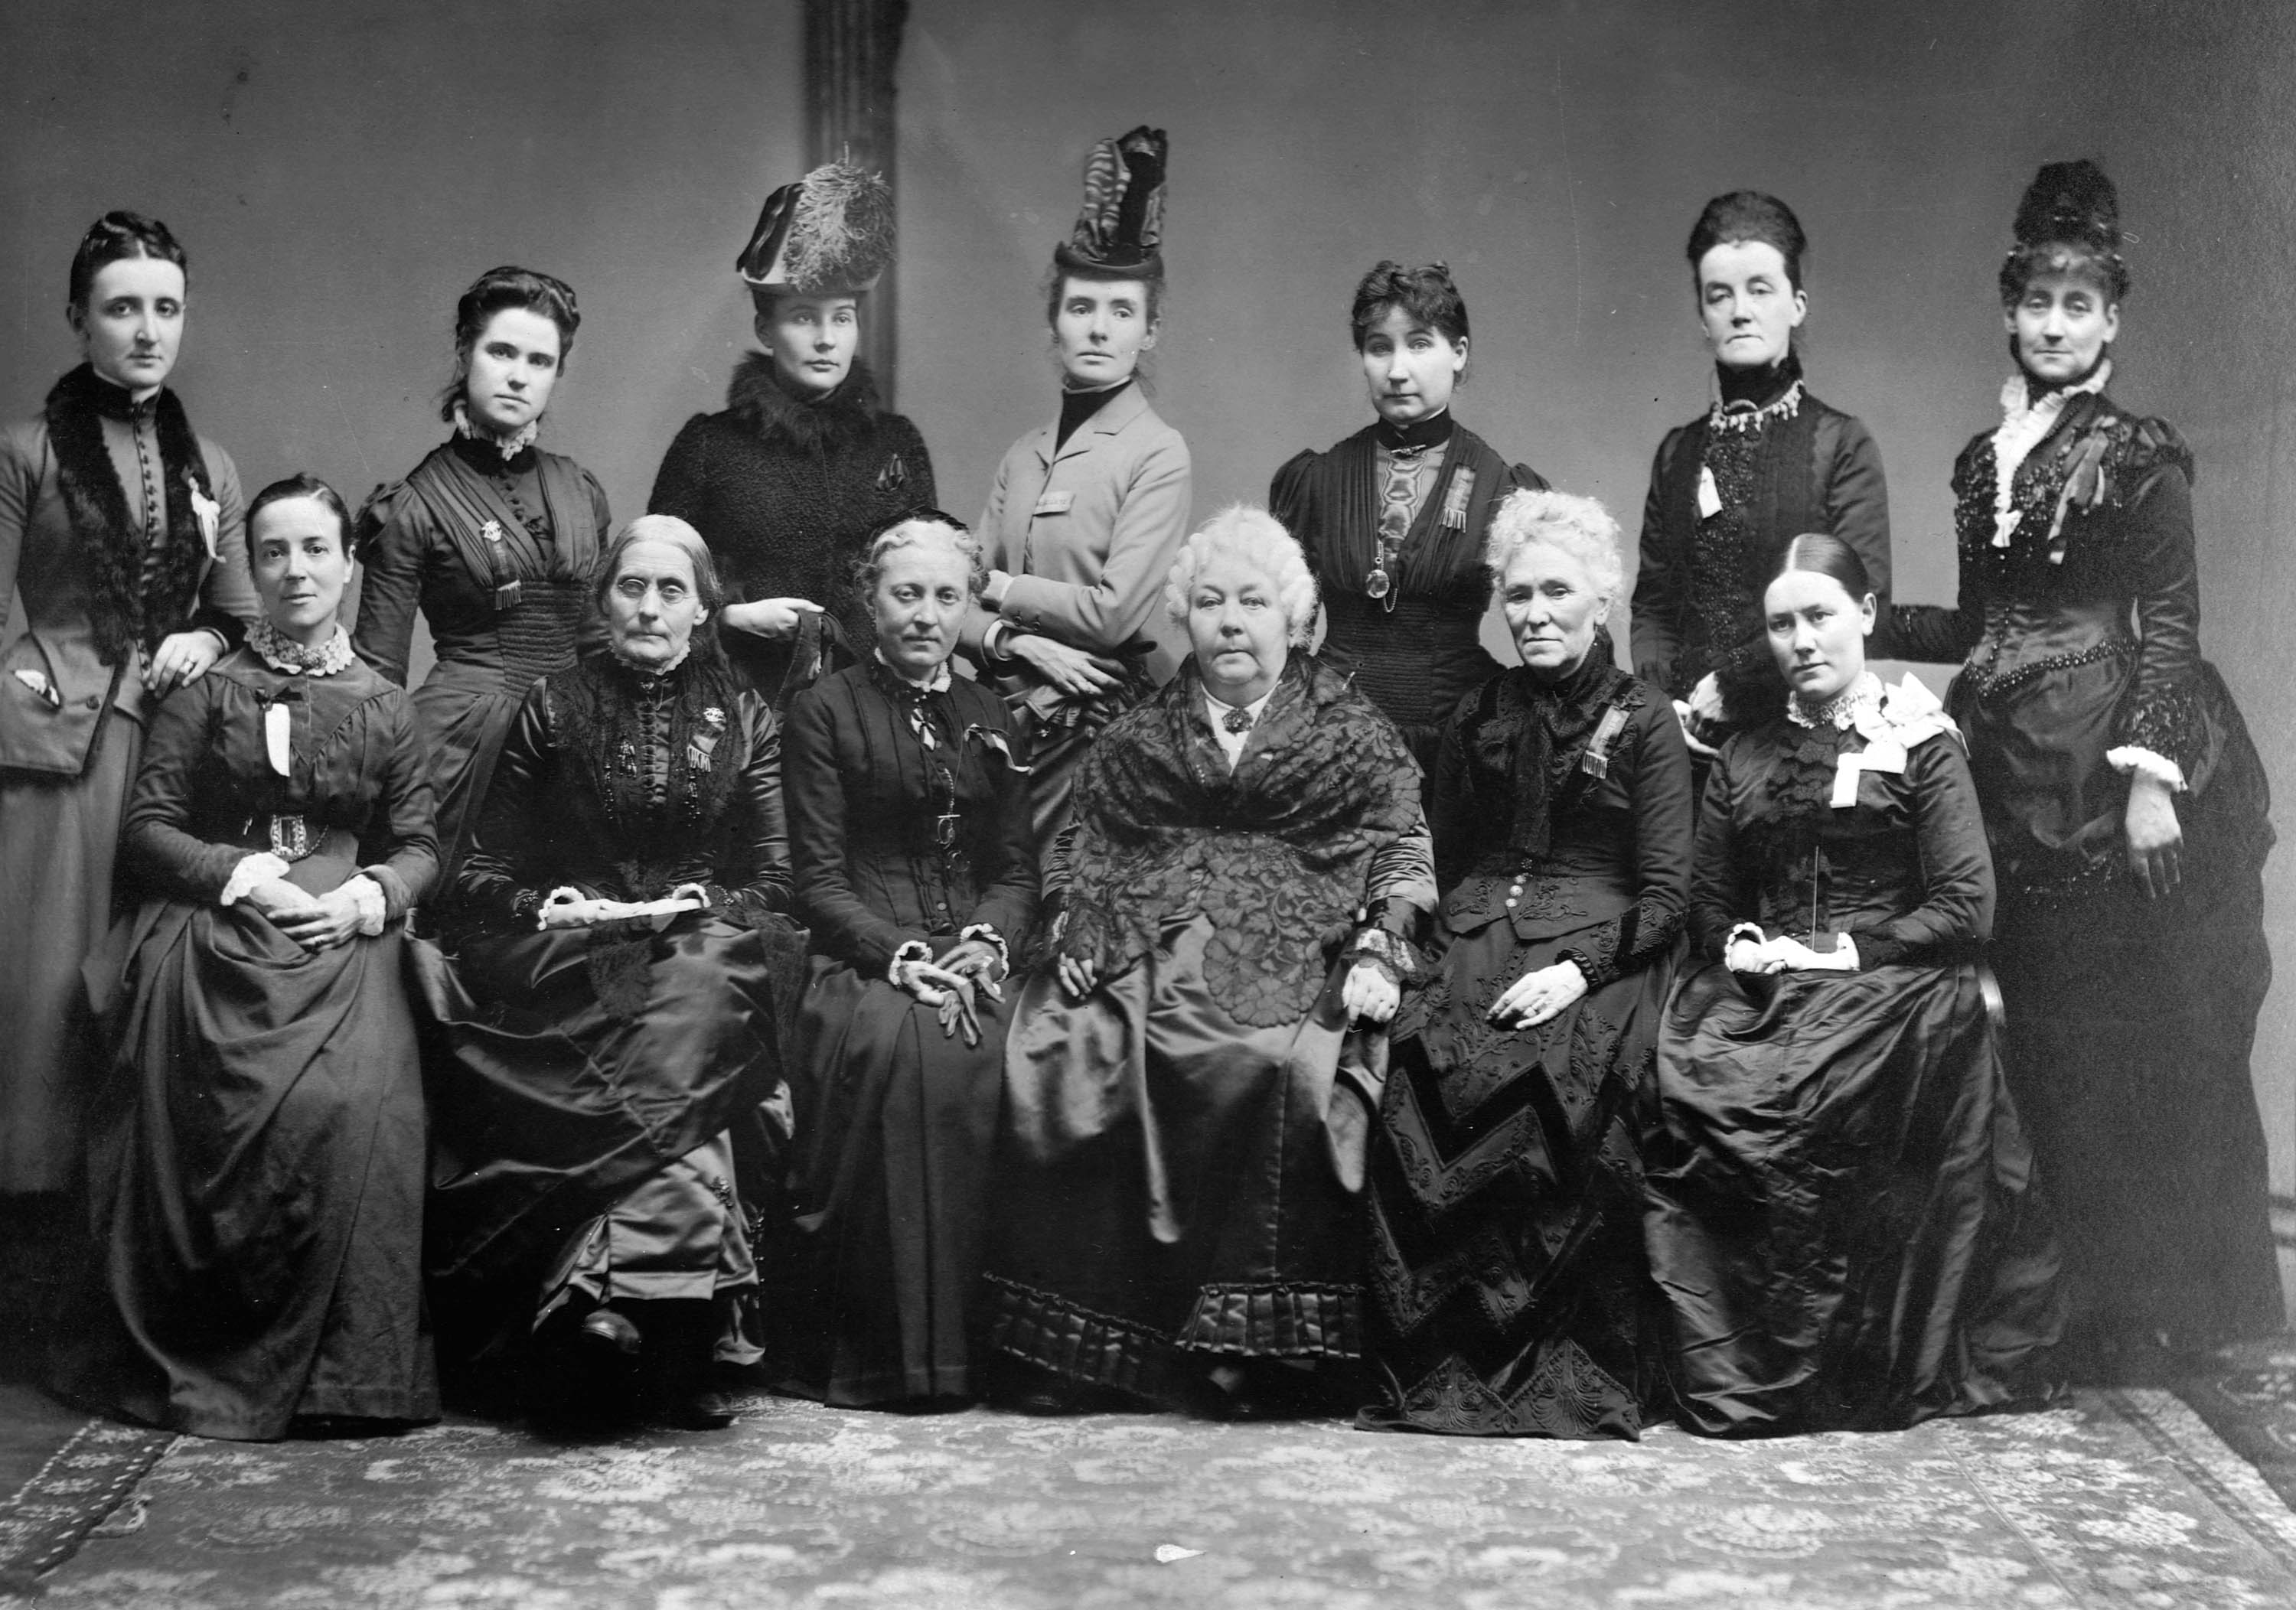 Early Women's Rights Activists Wanted Much More than Suffrage